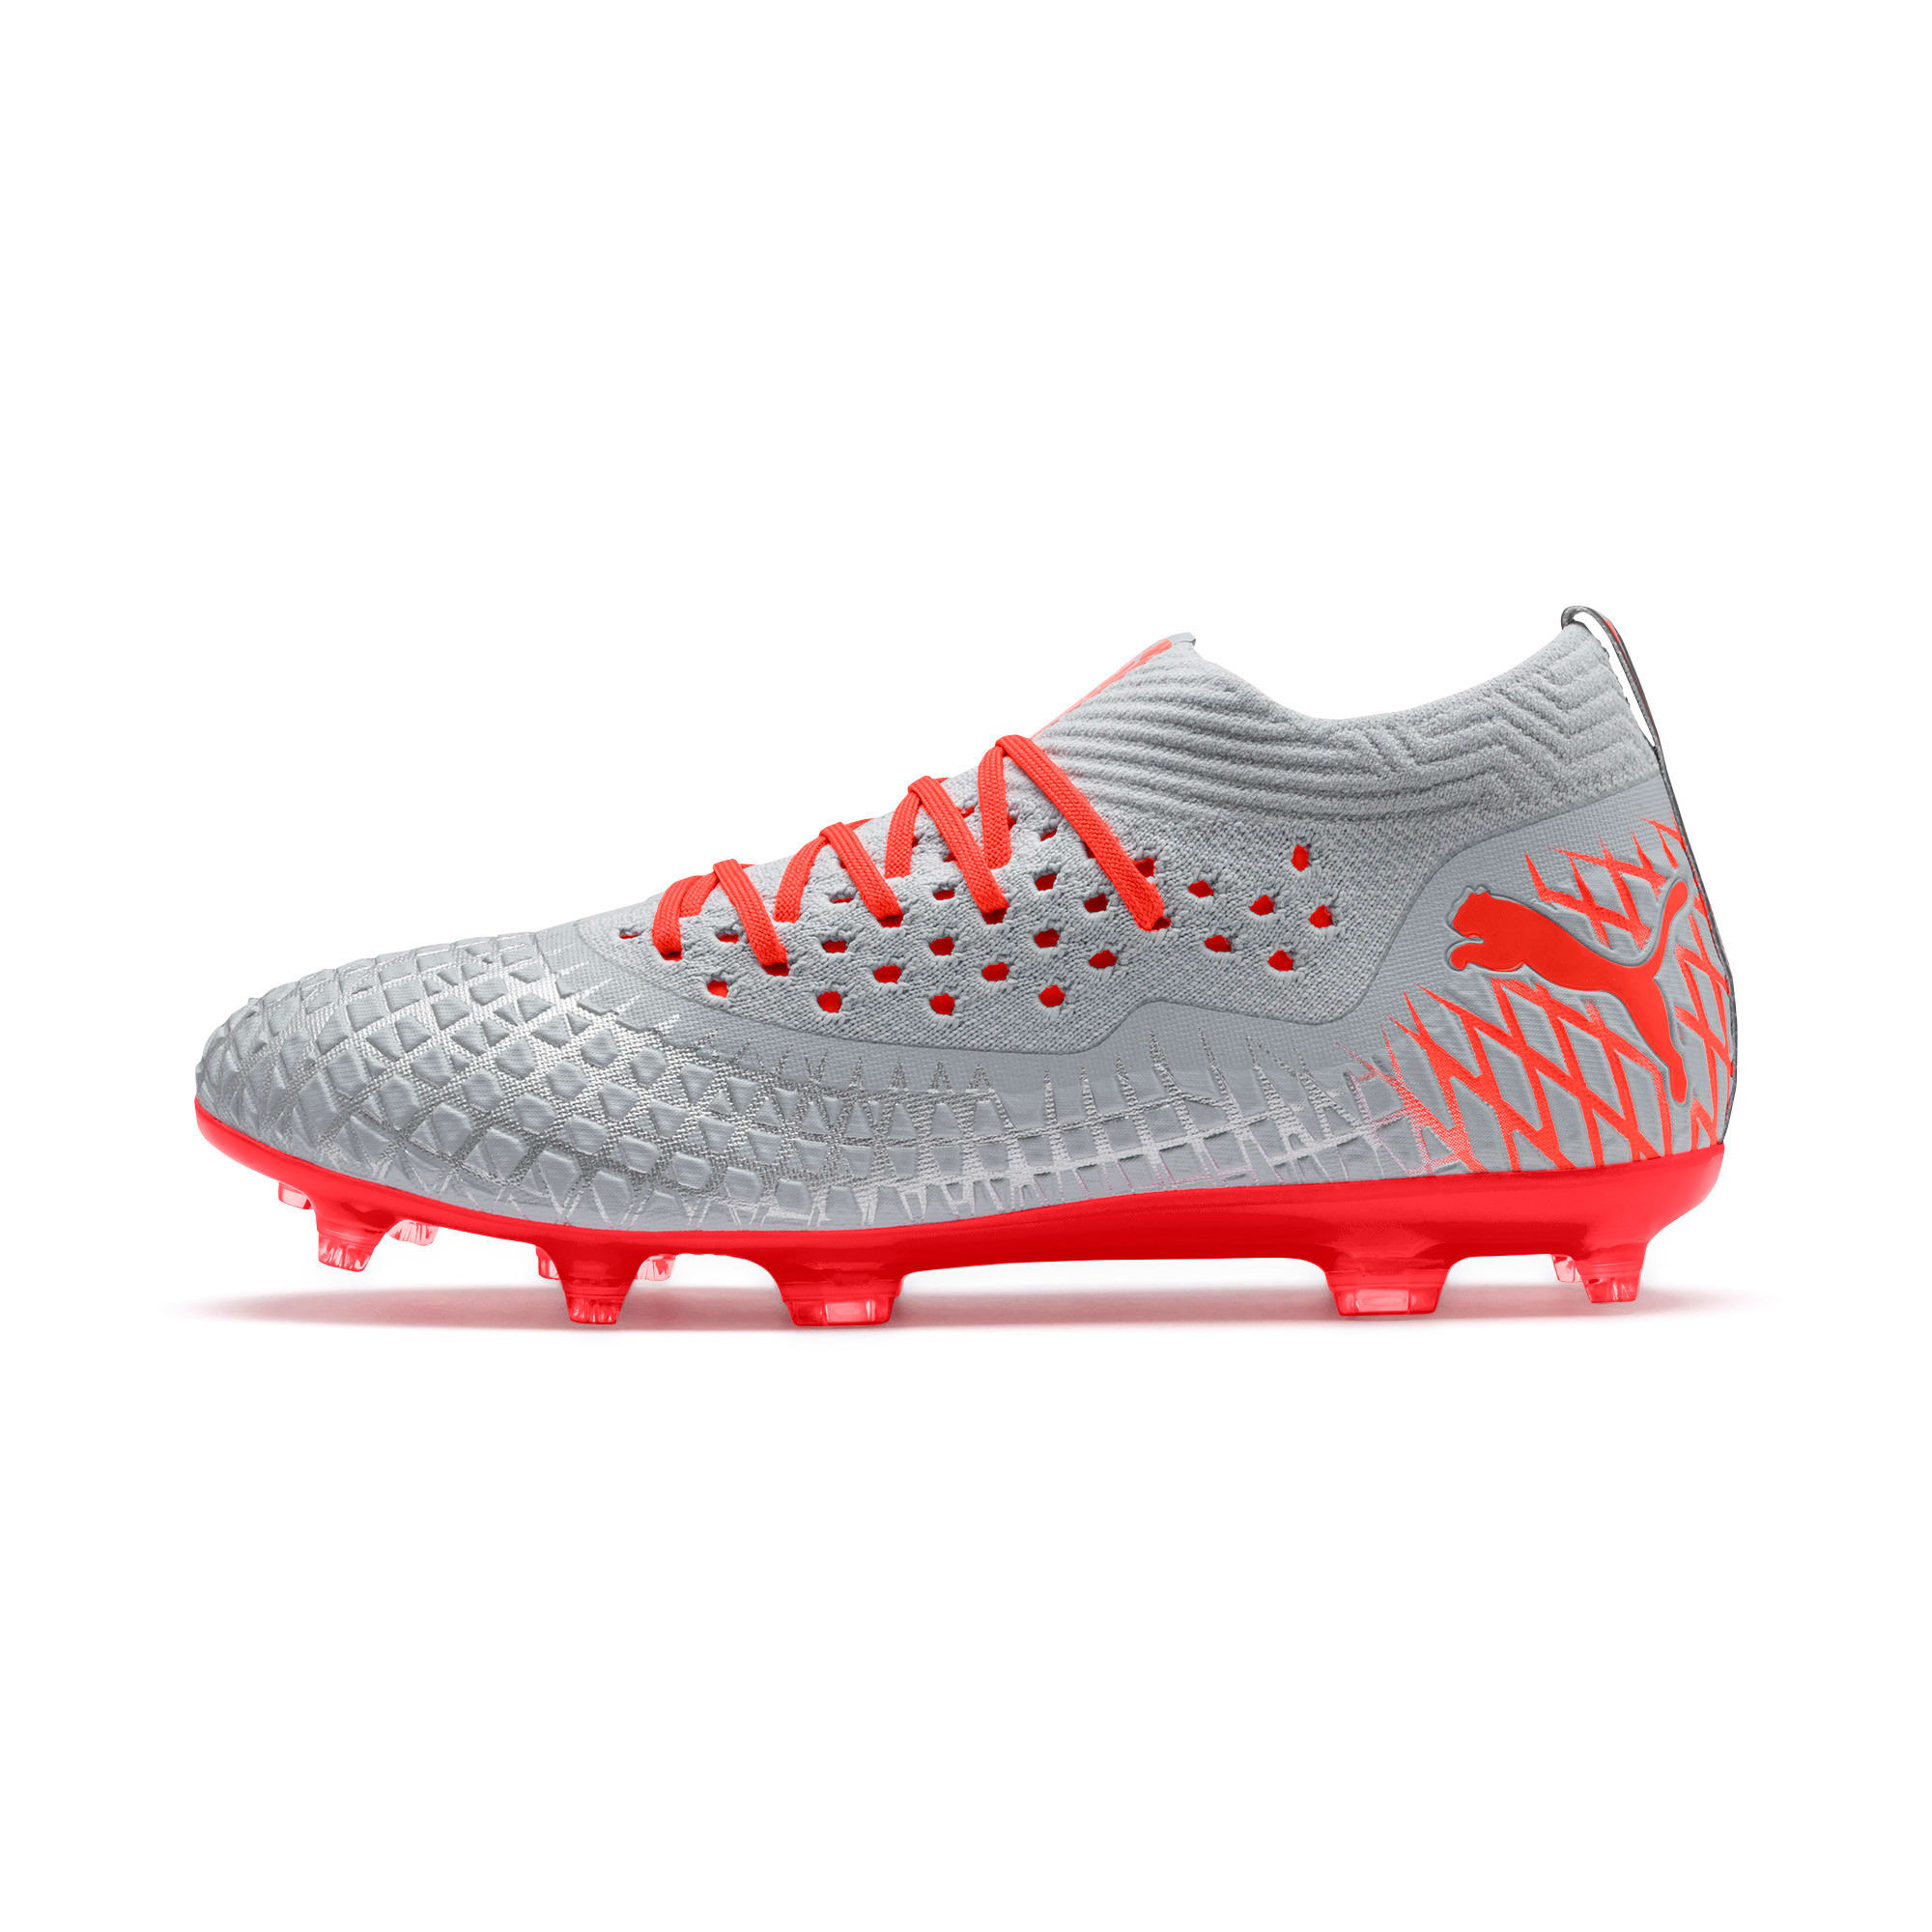 Thumbnail 1 of FUTURE 4.2 NETFIT FG/AG Men's Football Boots, Glacial Blue-Nrgy Red, medium